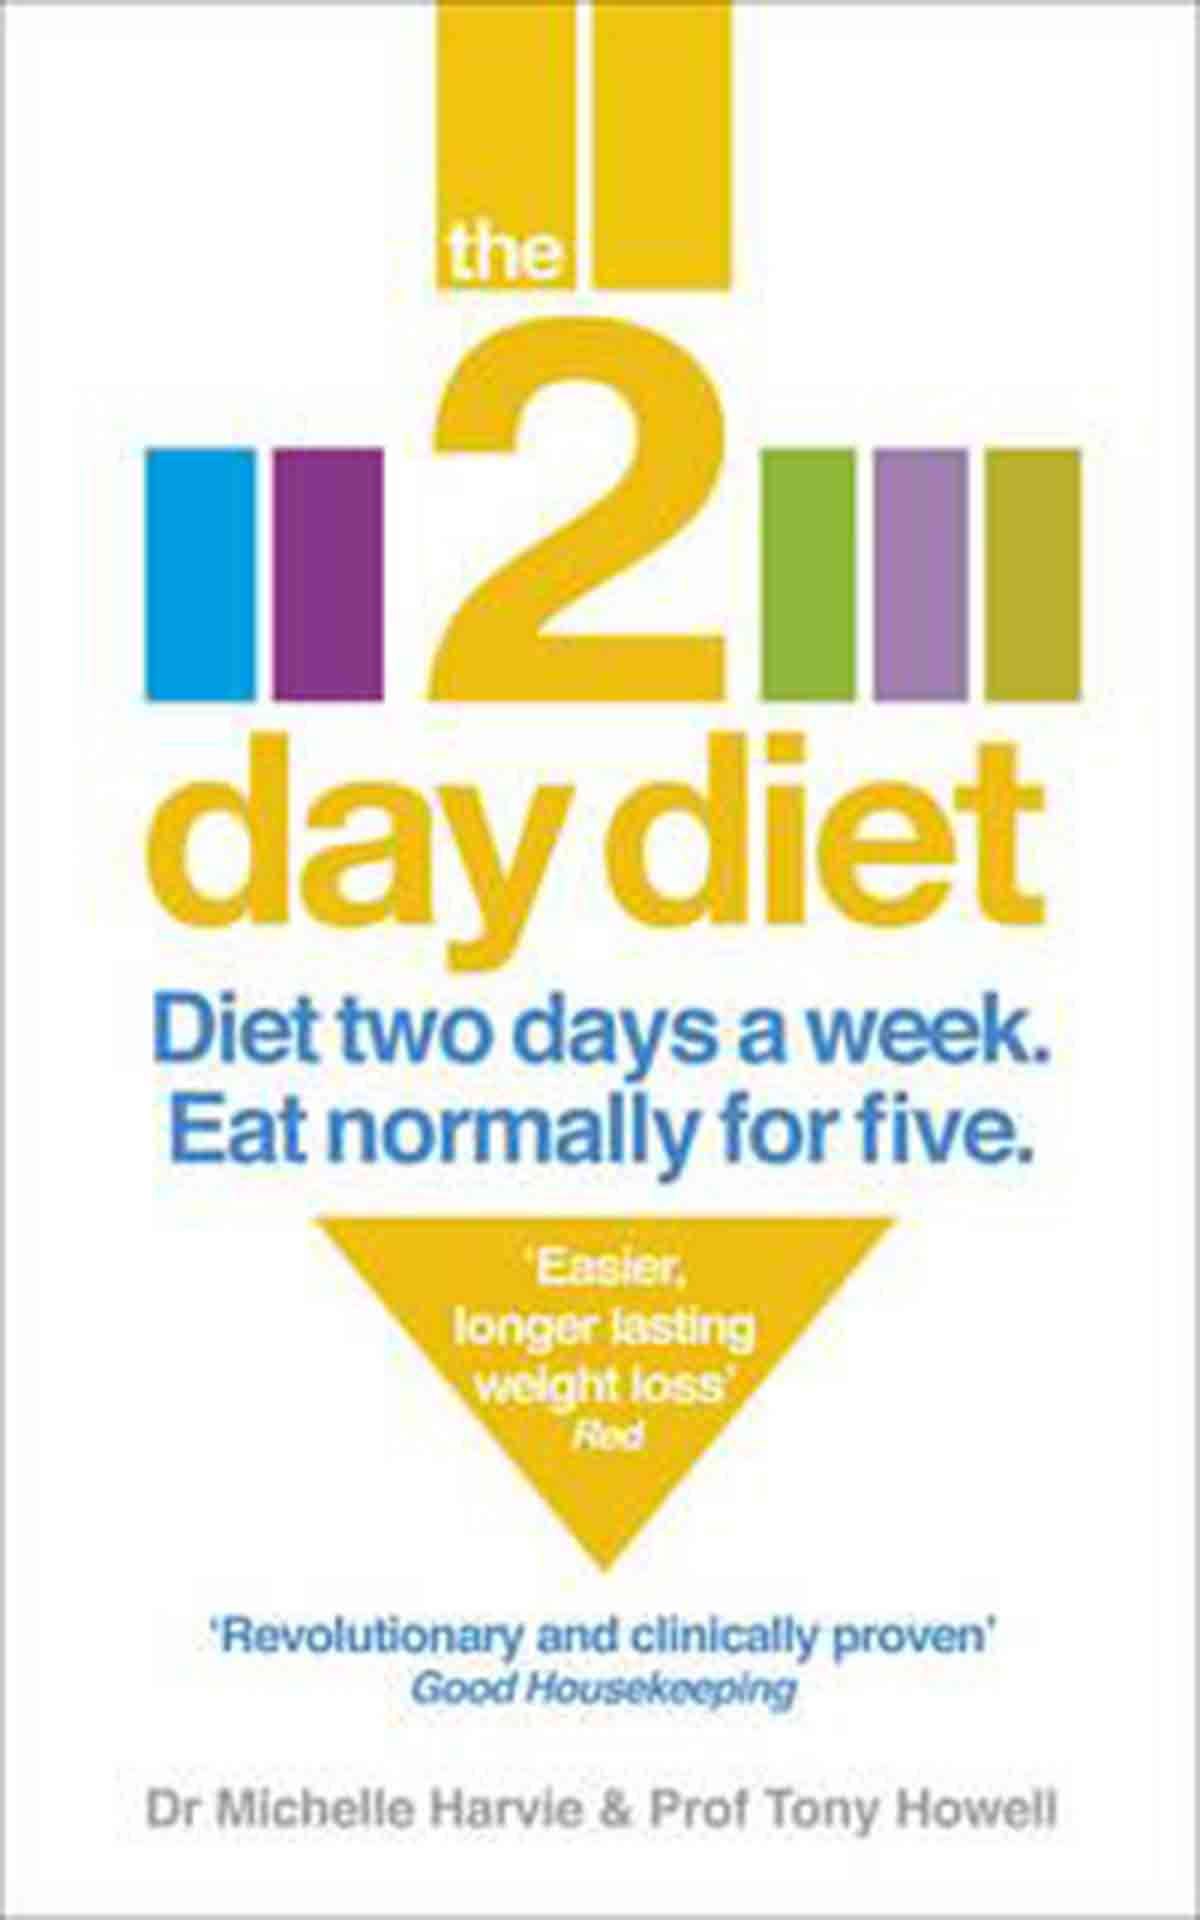 The 2 Day Diet book